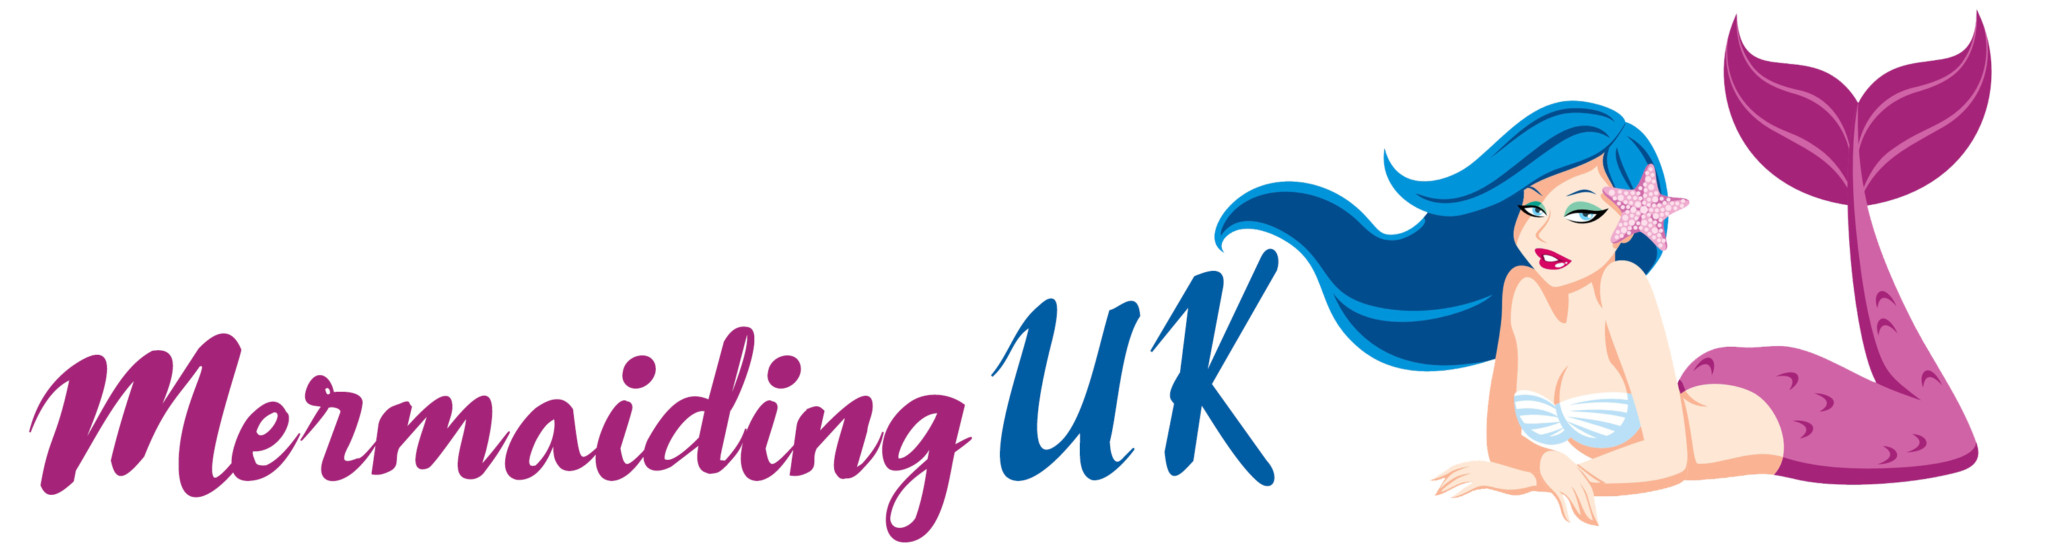 Mermaiding UK